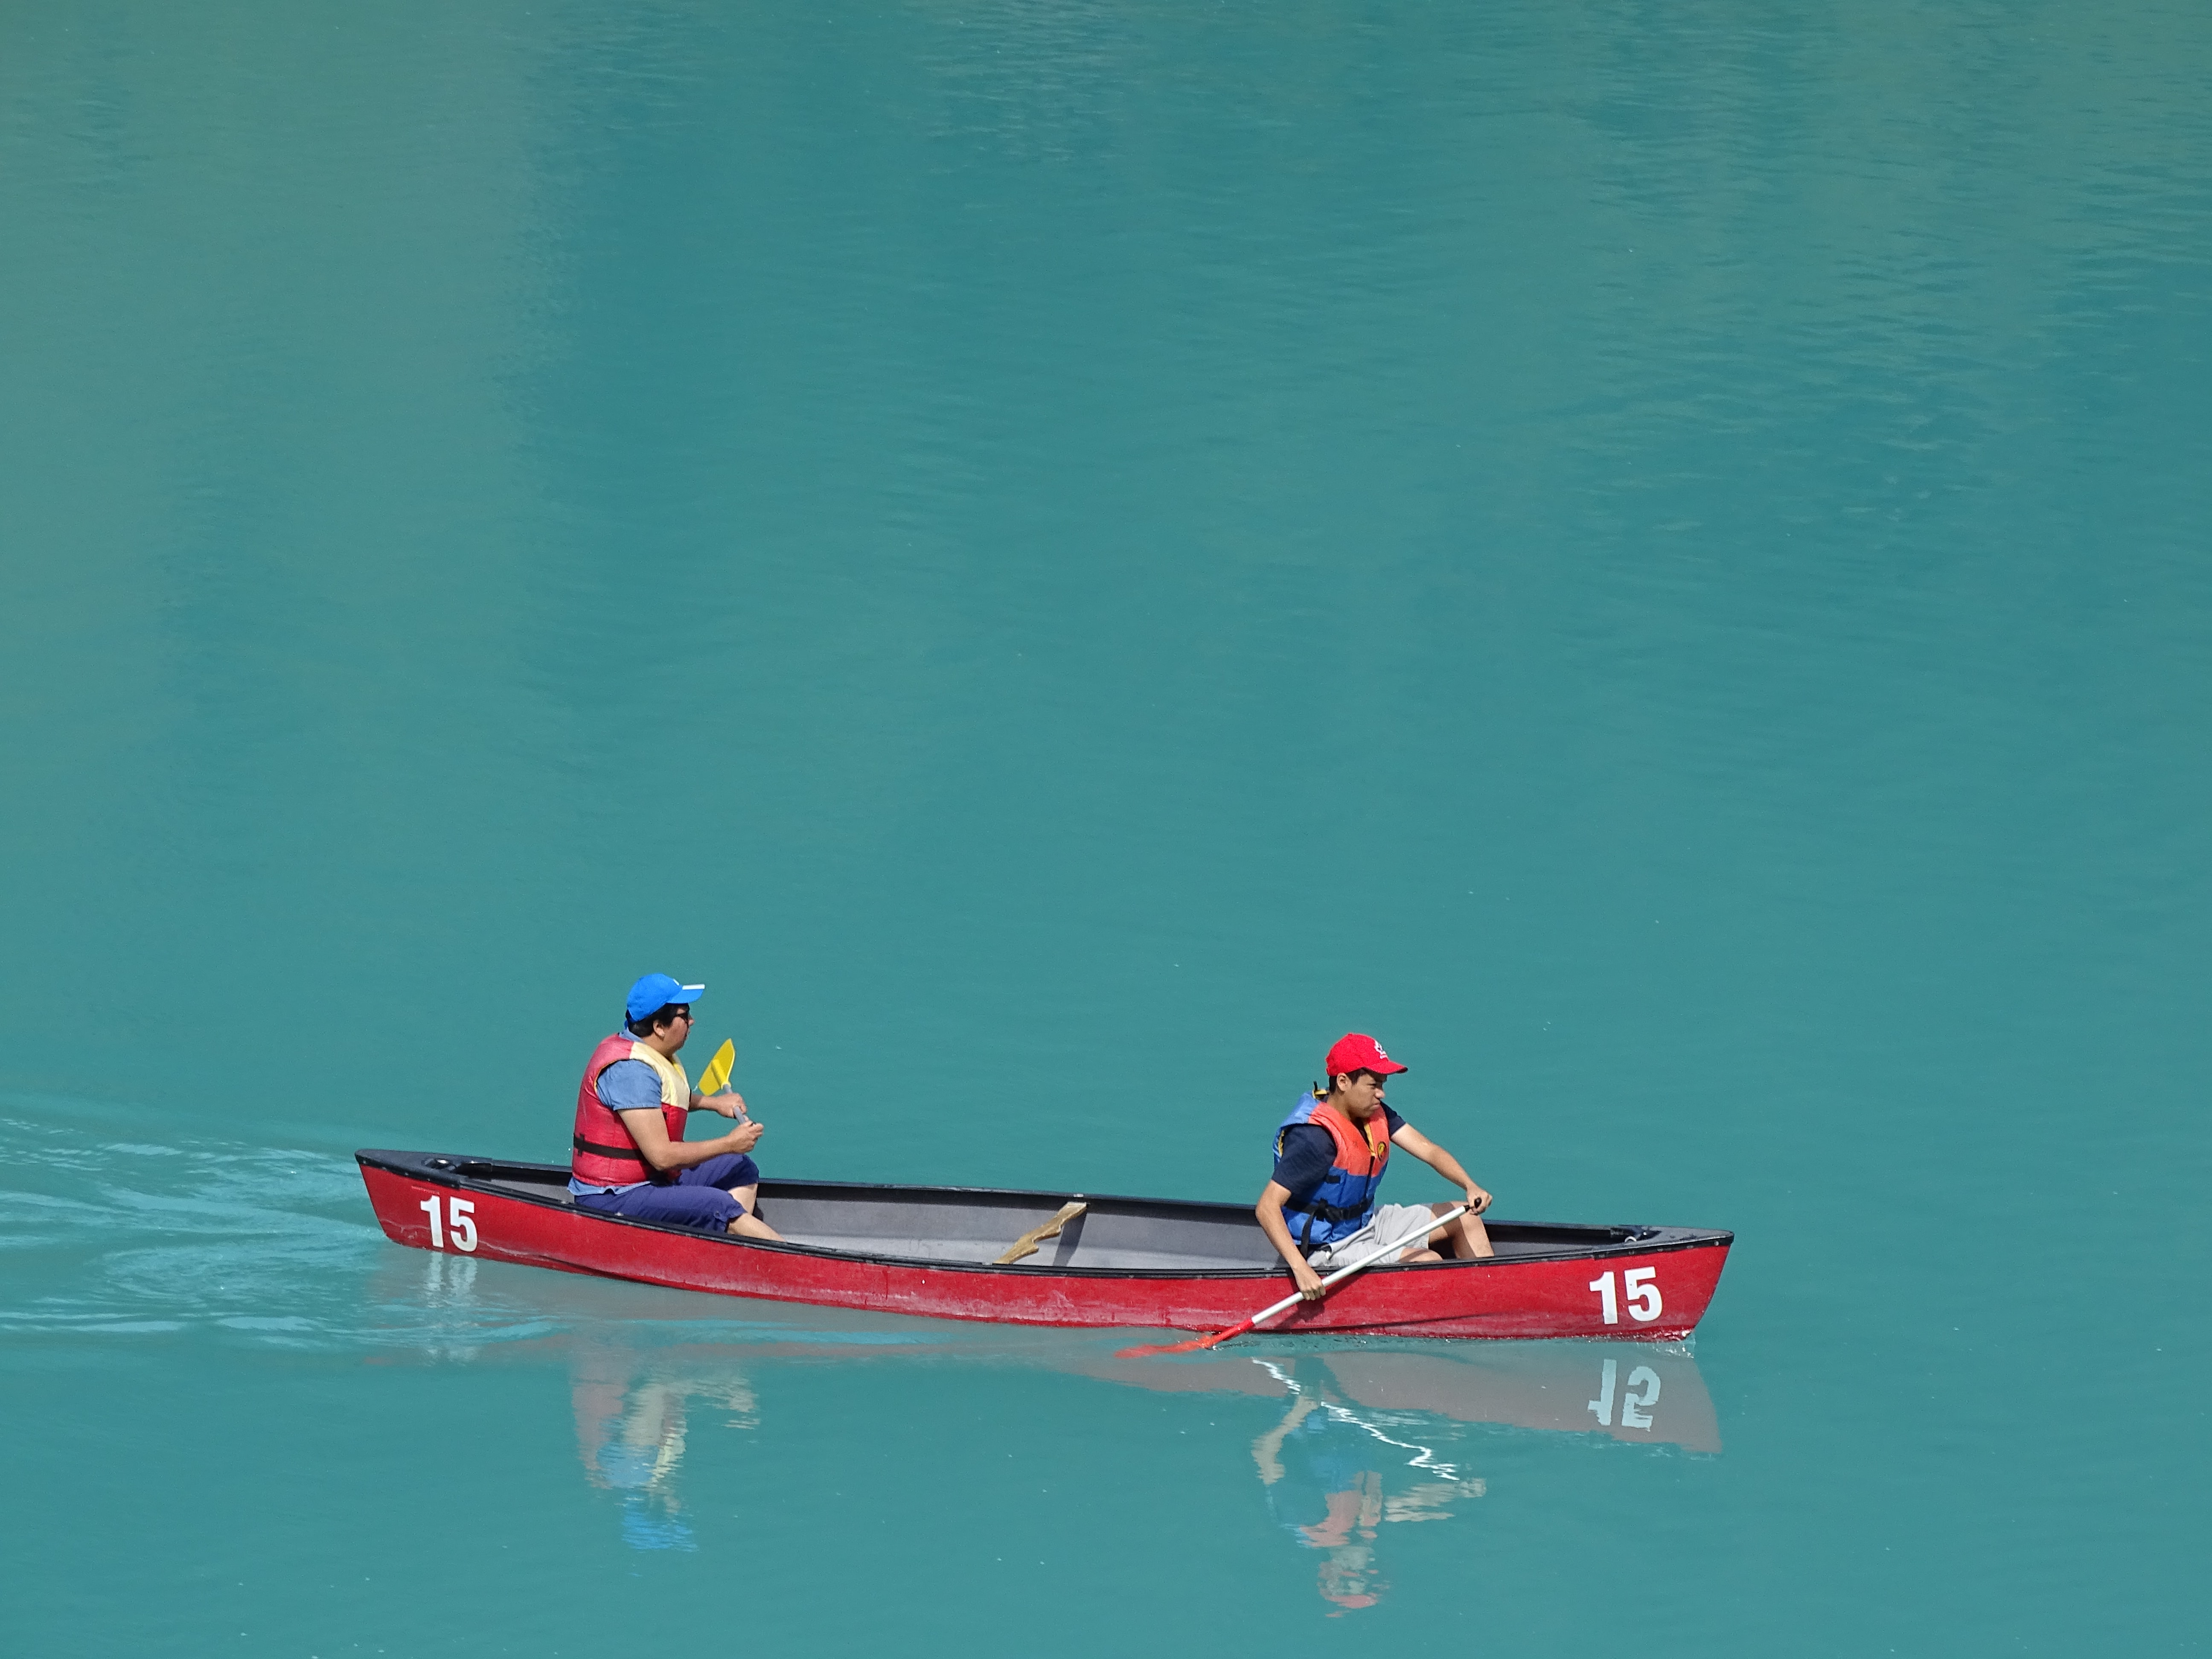 two people on boat